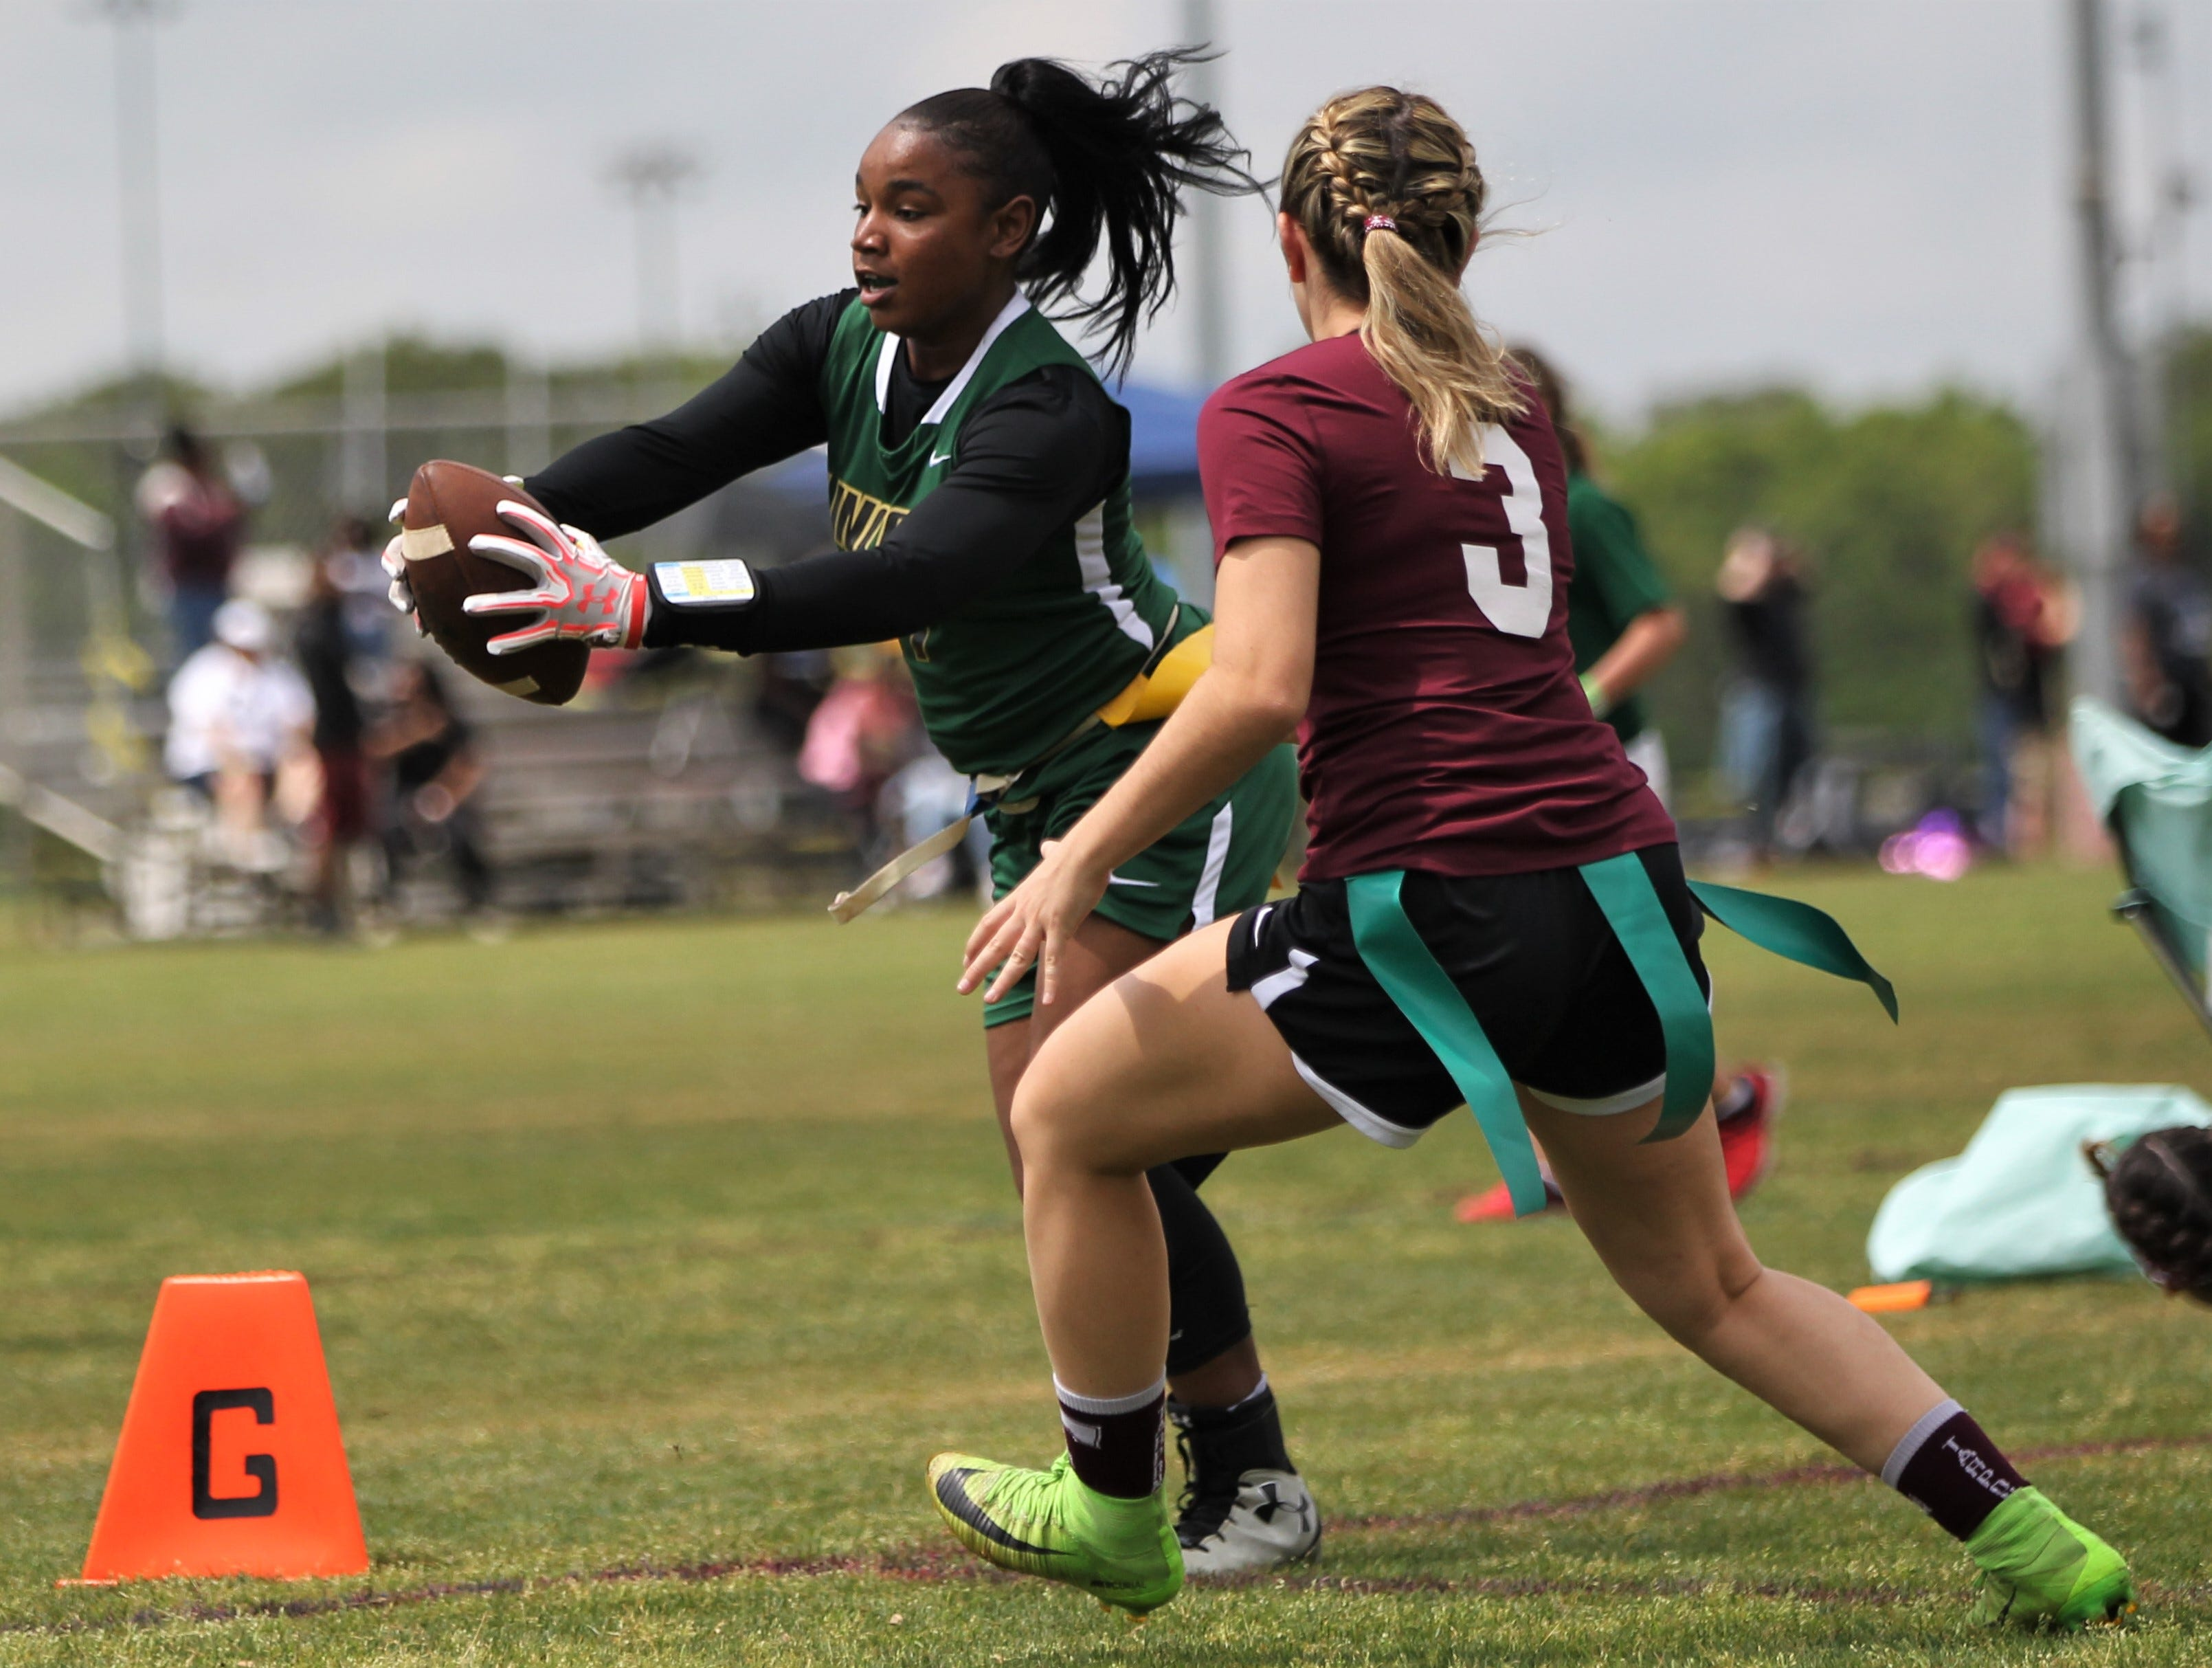 Lincoln's Erin Turral extends for a touchdown against Tarpon Springs in the 2019 Capital City Classic flag football tournament at the FSU Rec SportsPlex on April 6, 2019.